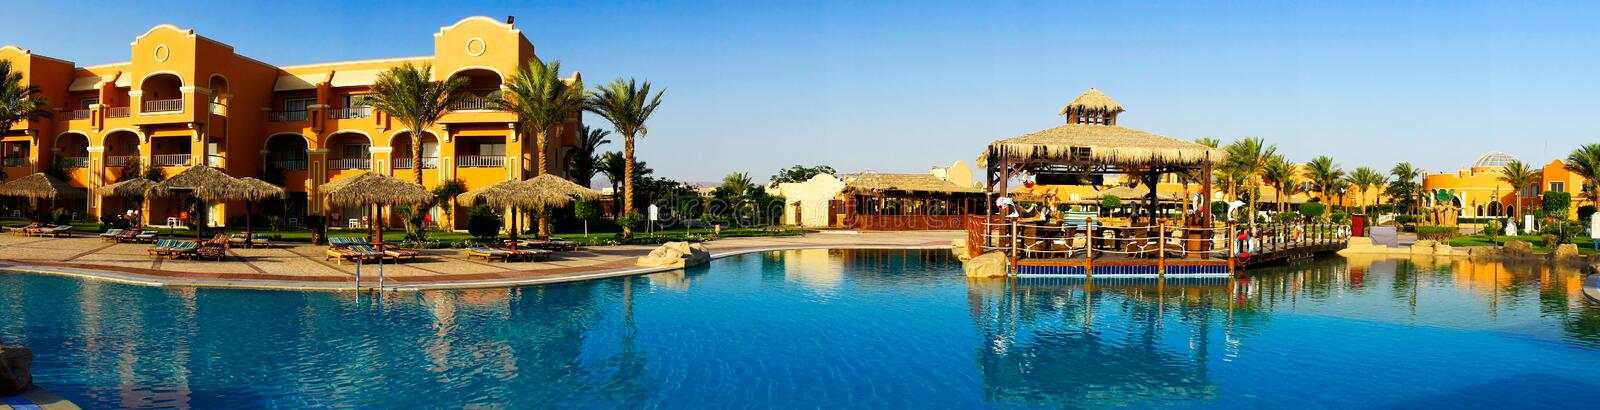 Download Wonderful  Hotel Swimming Pool In The Egypt. Stock Photo - Image: 26010098